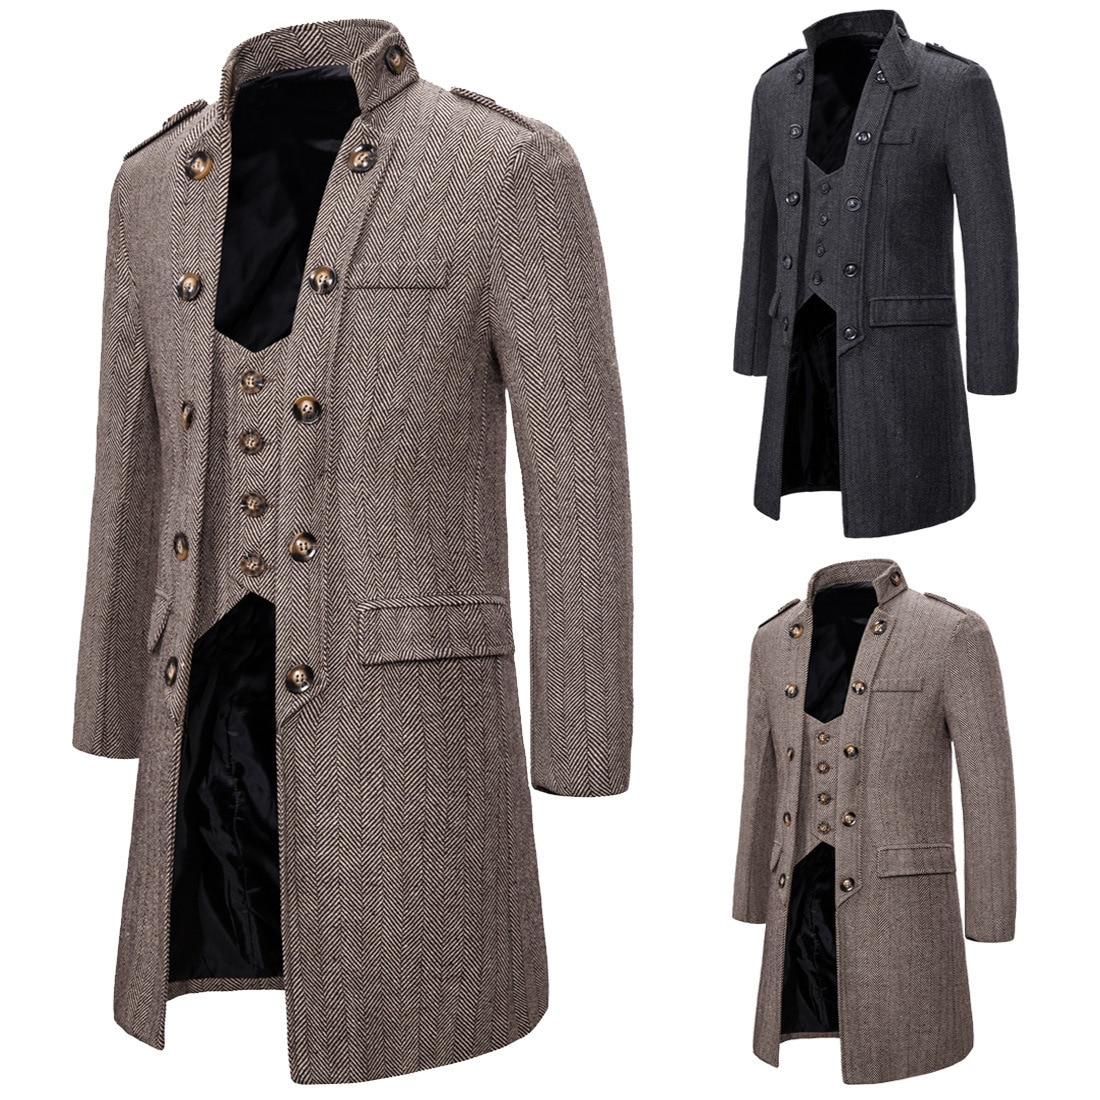 Men's brand new wash creative personality long style fake two coats fashion business casual windbrea